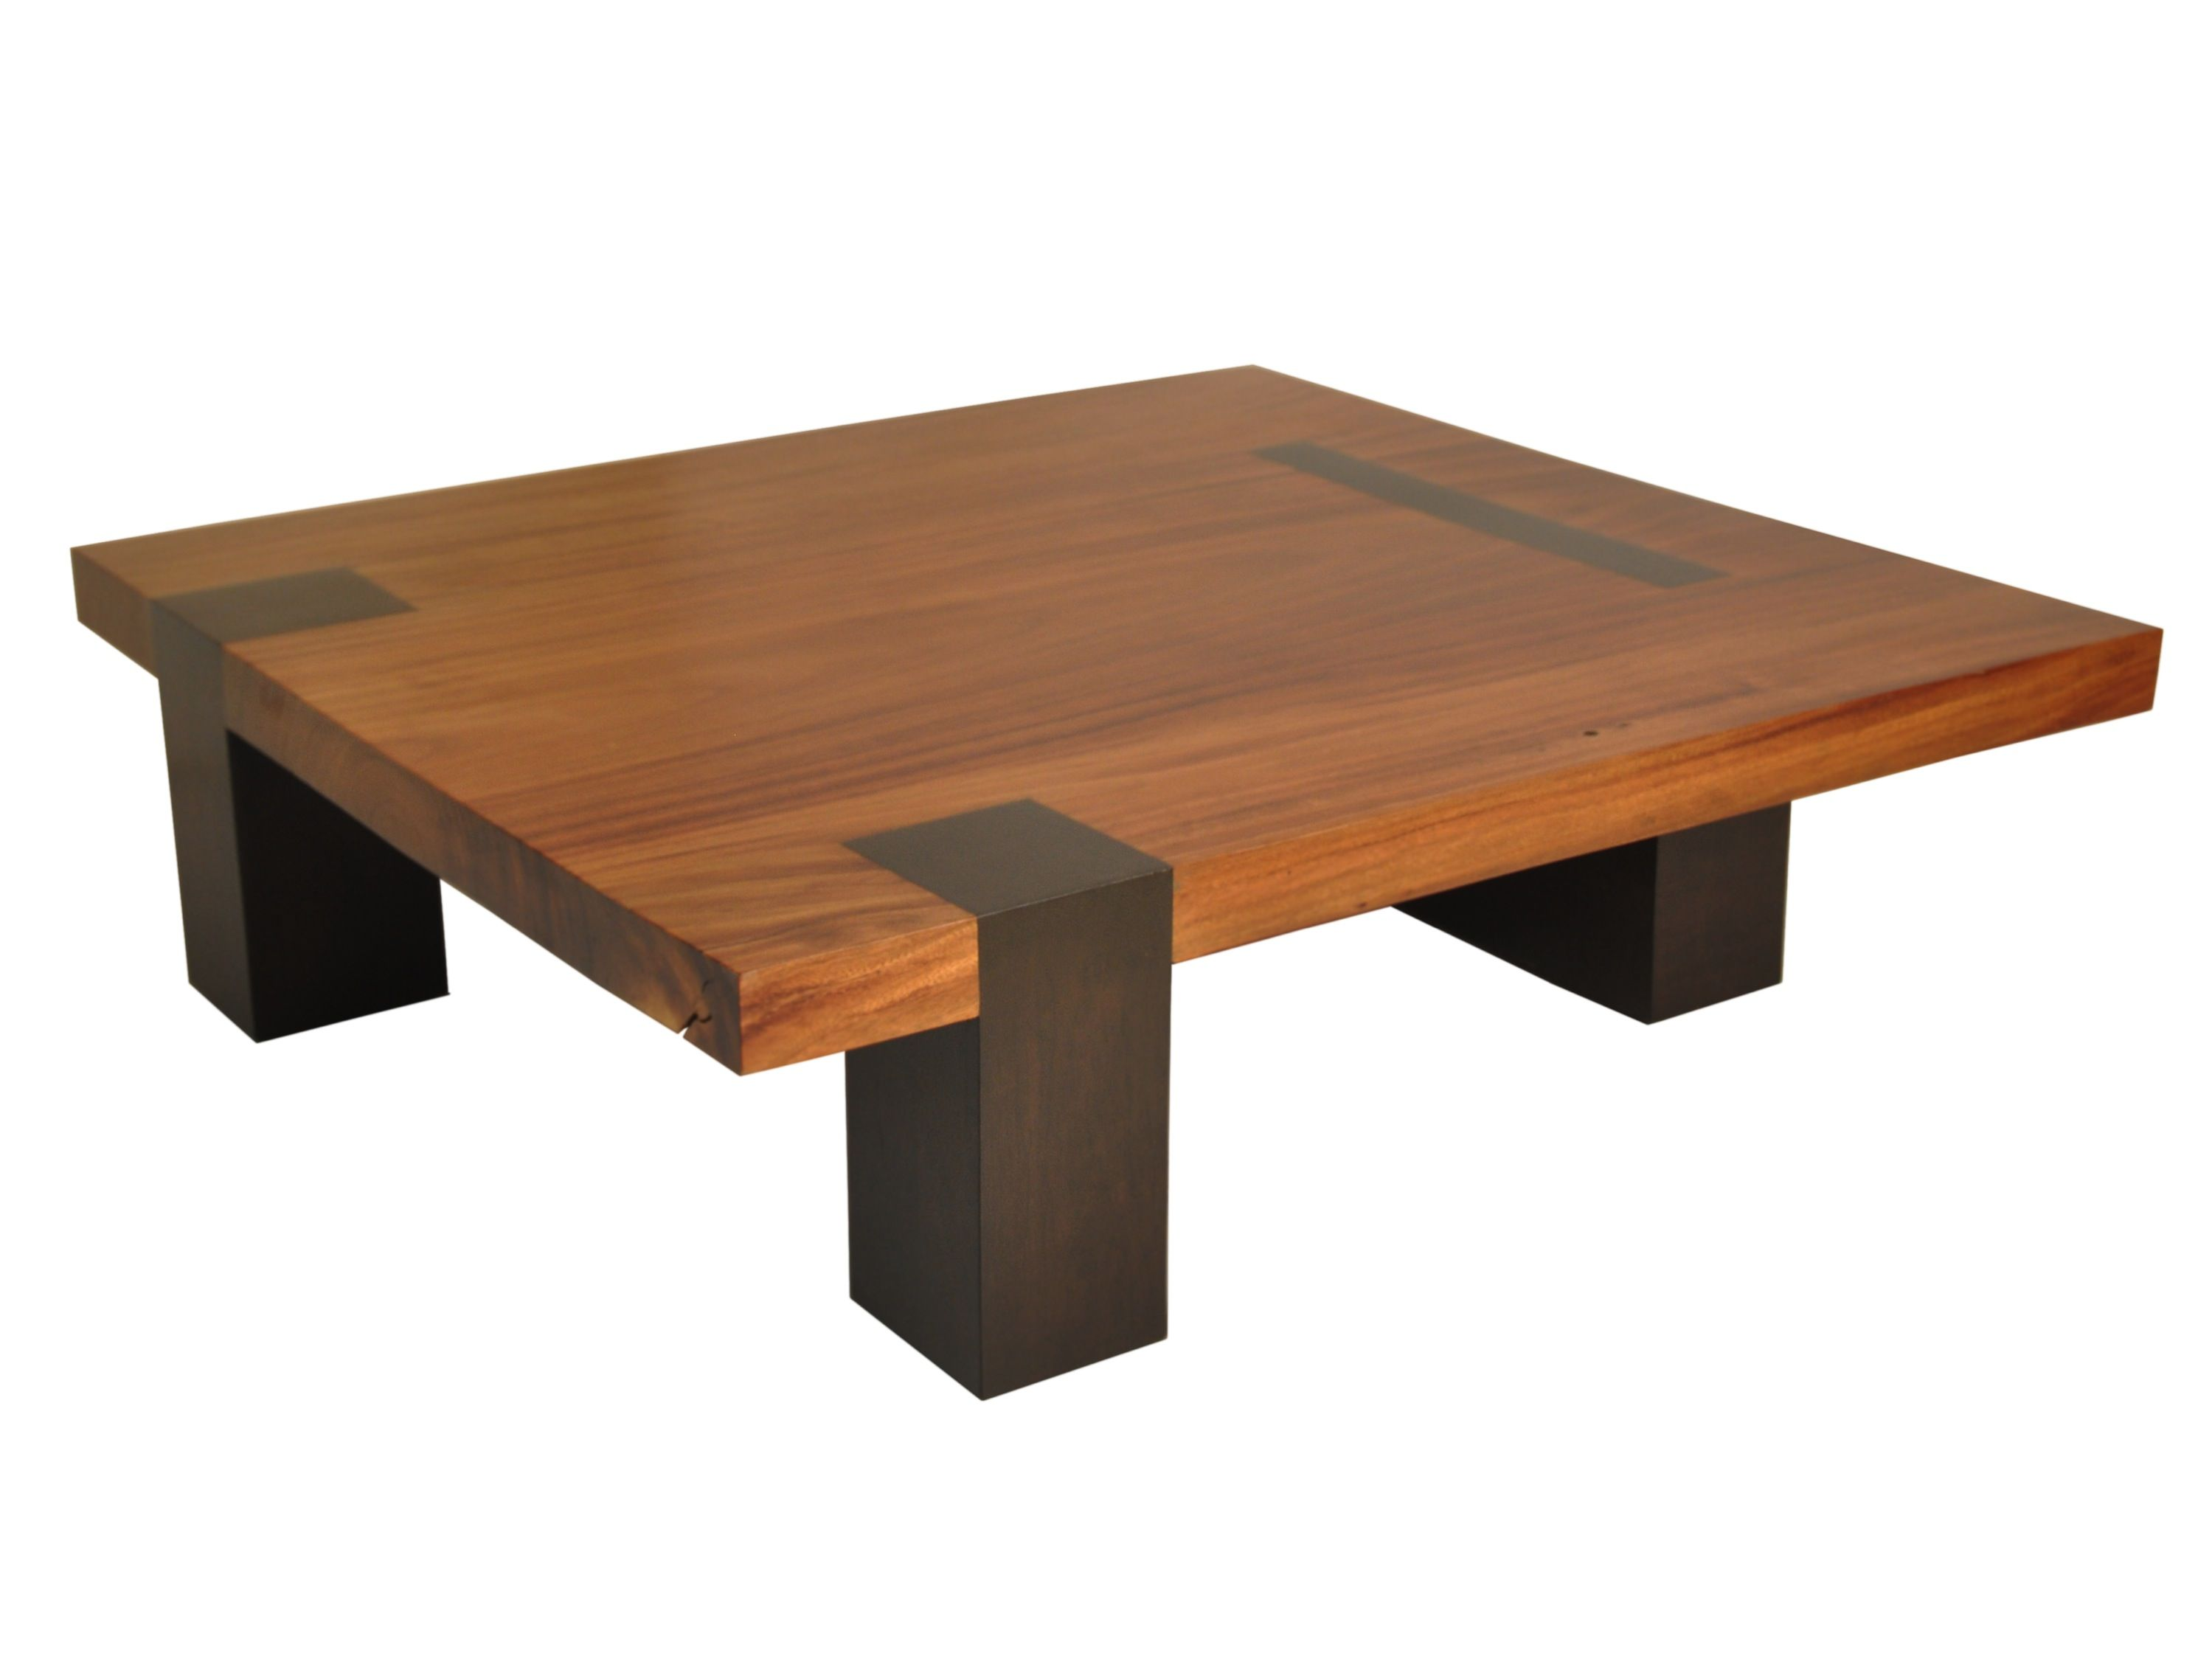 Square Tamburil Coffee Table Walnut Legs By Rotsen Furniture Made To Order Designer From Dering Hall S Collection Of